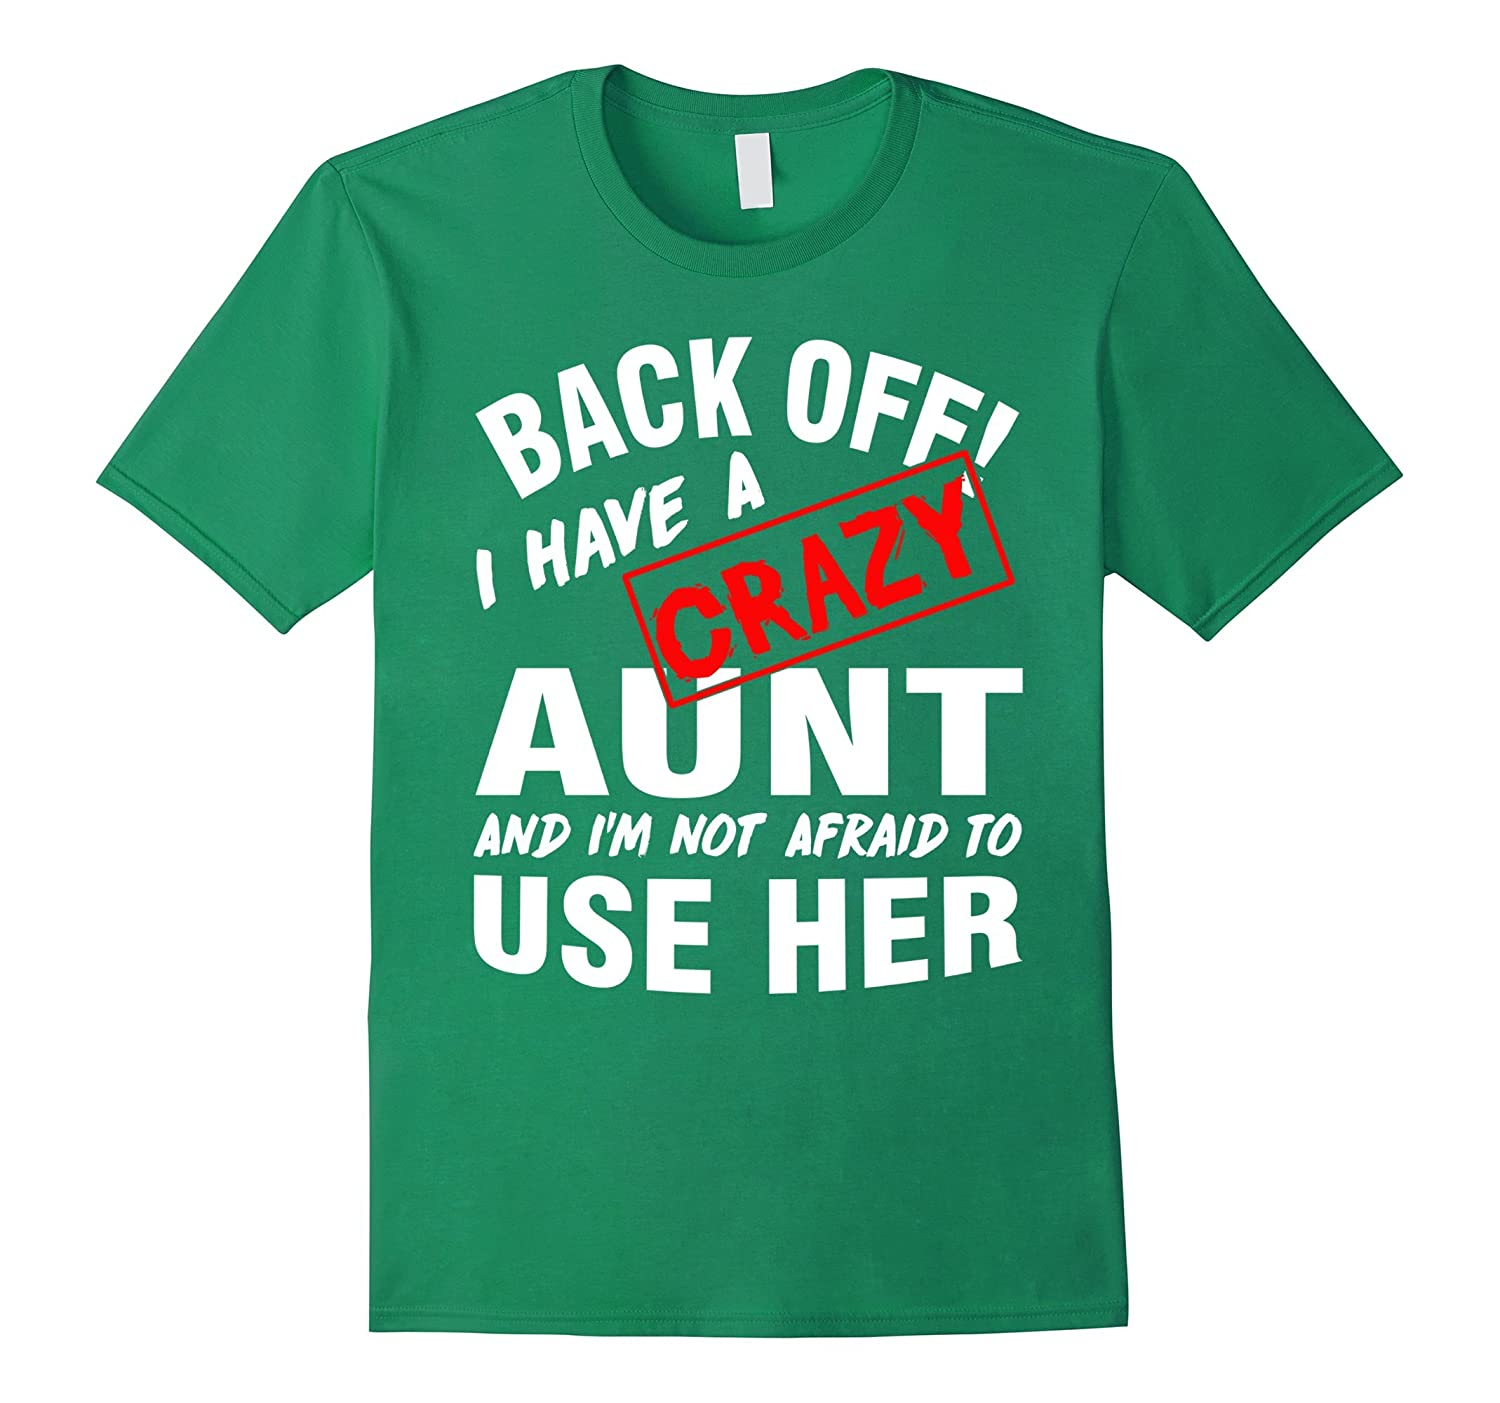 back off i have a crazy aunt, i'm not afraid to use her